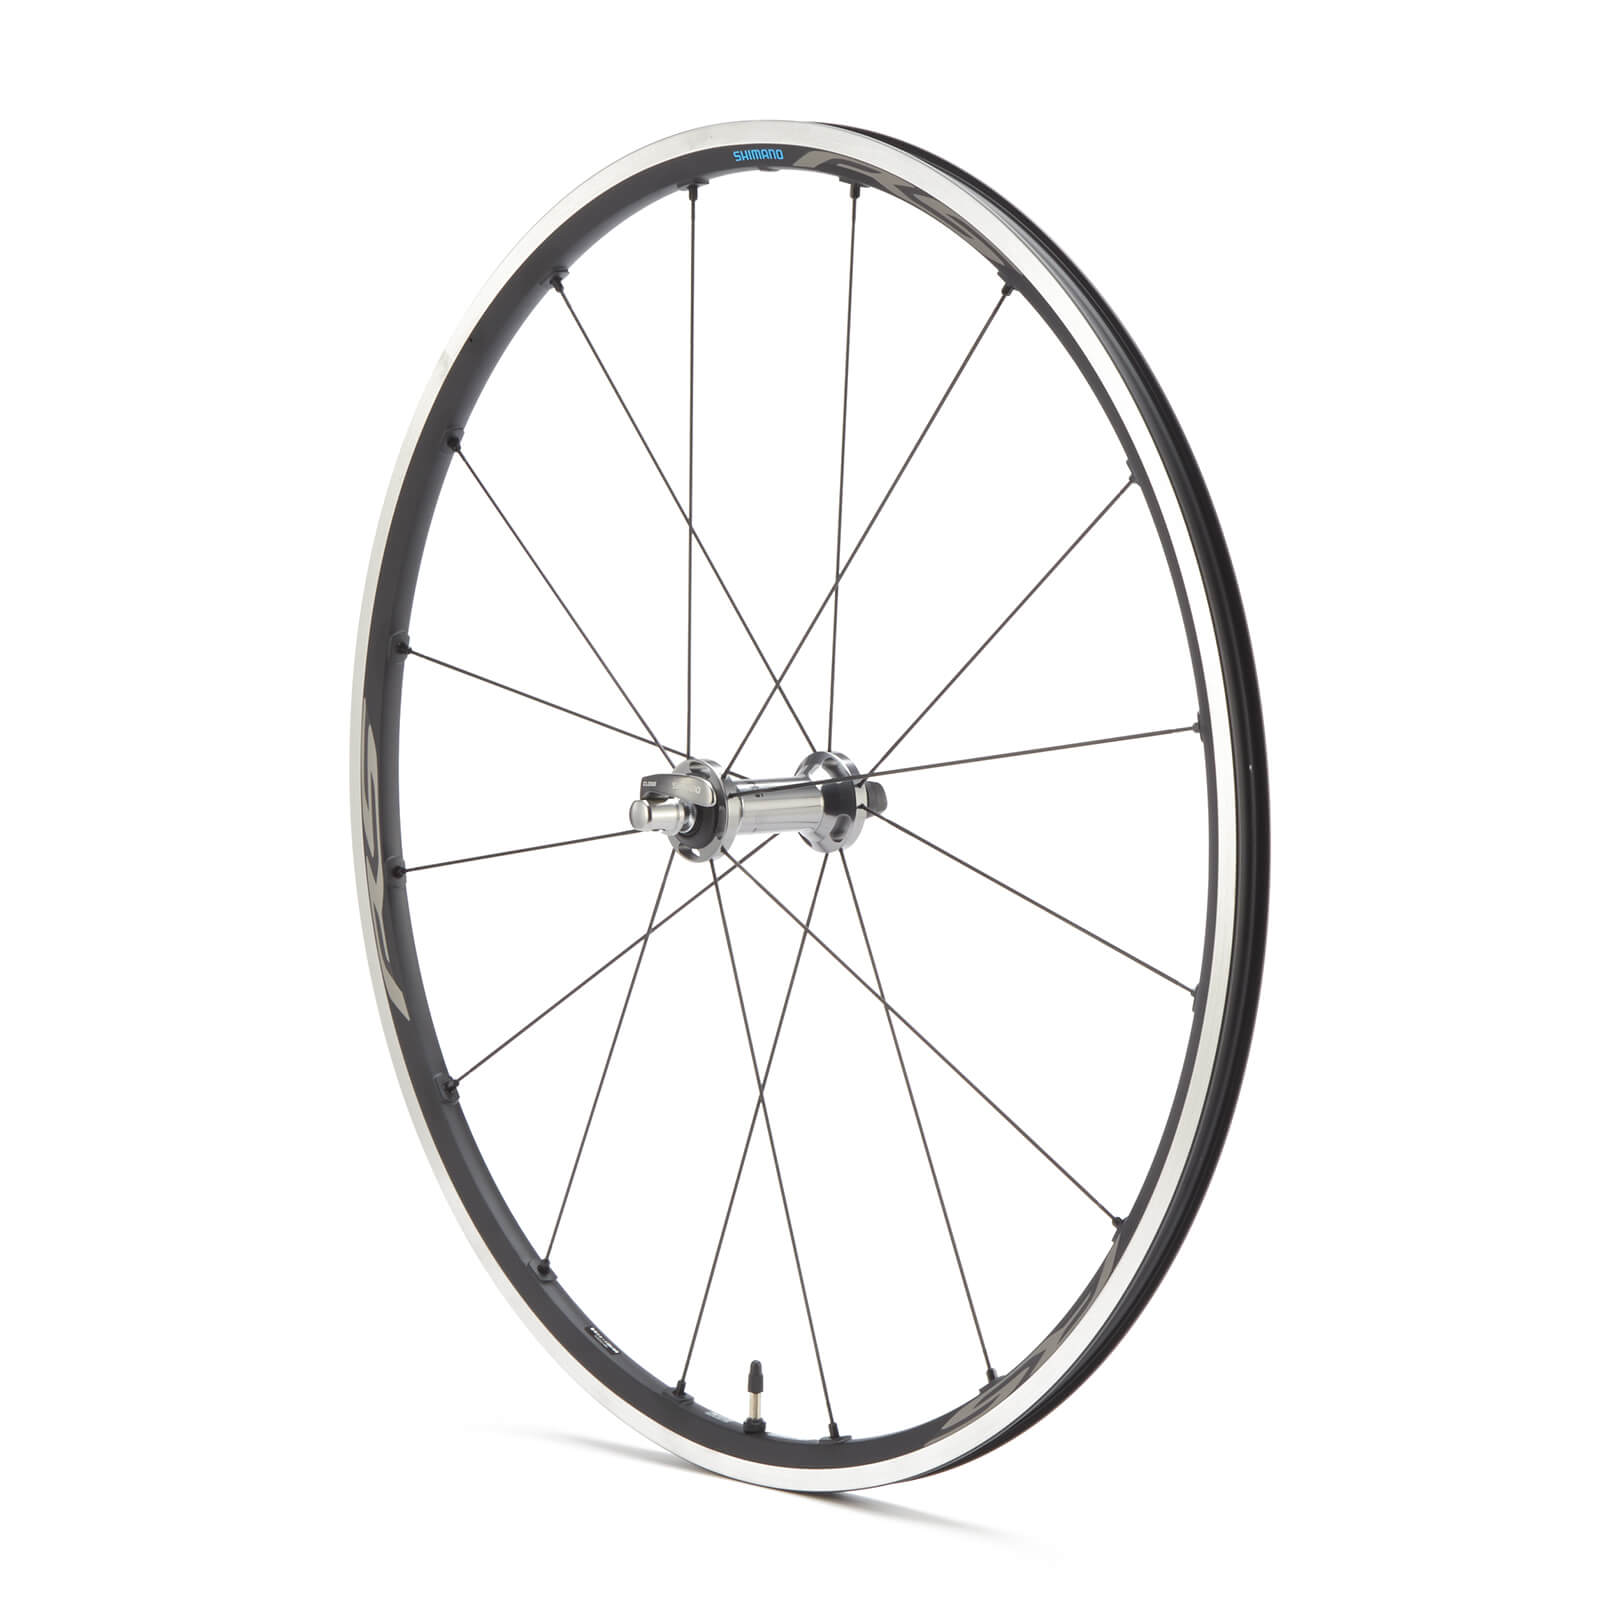 Shimano Ultegra RS500 Front Wheel